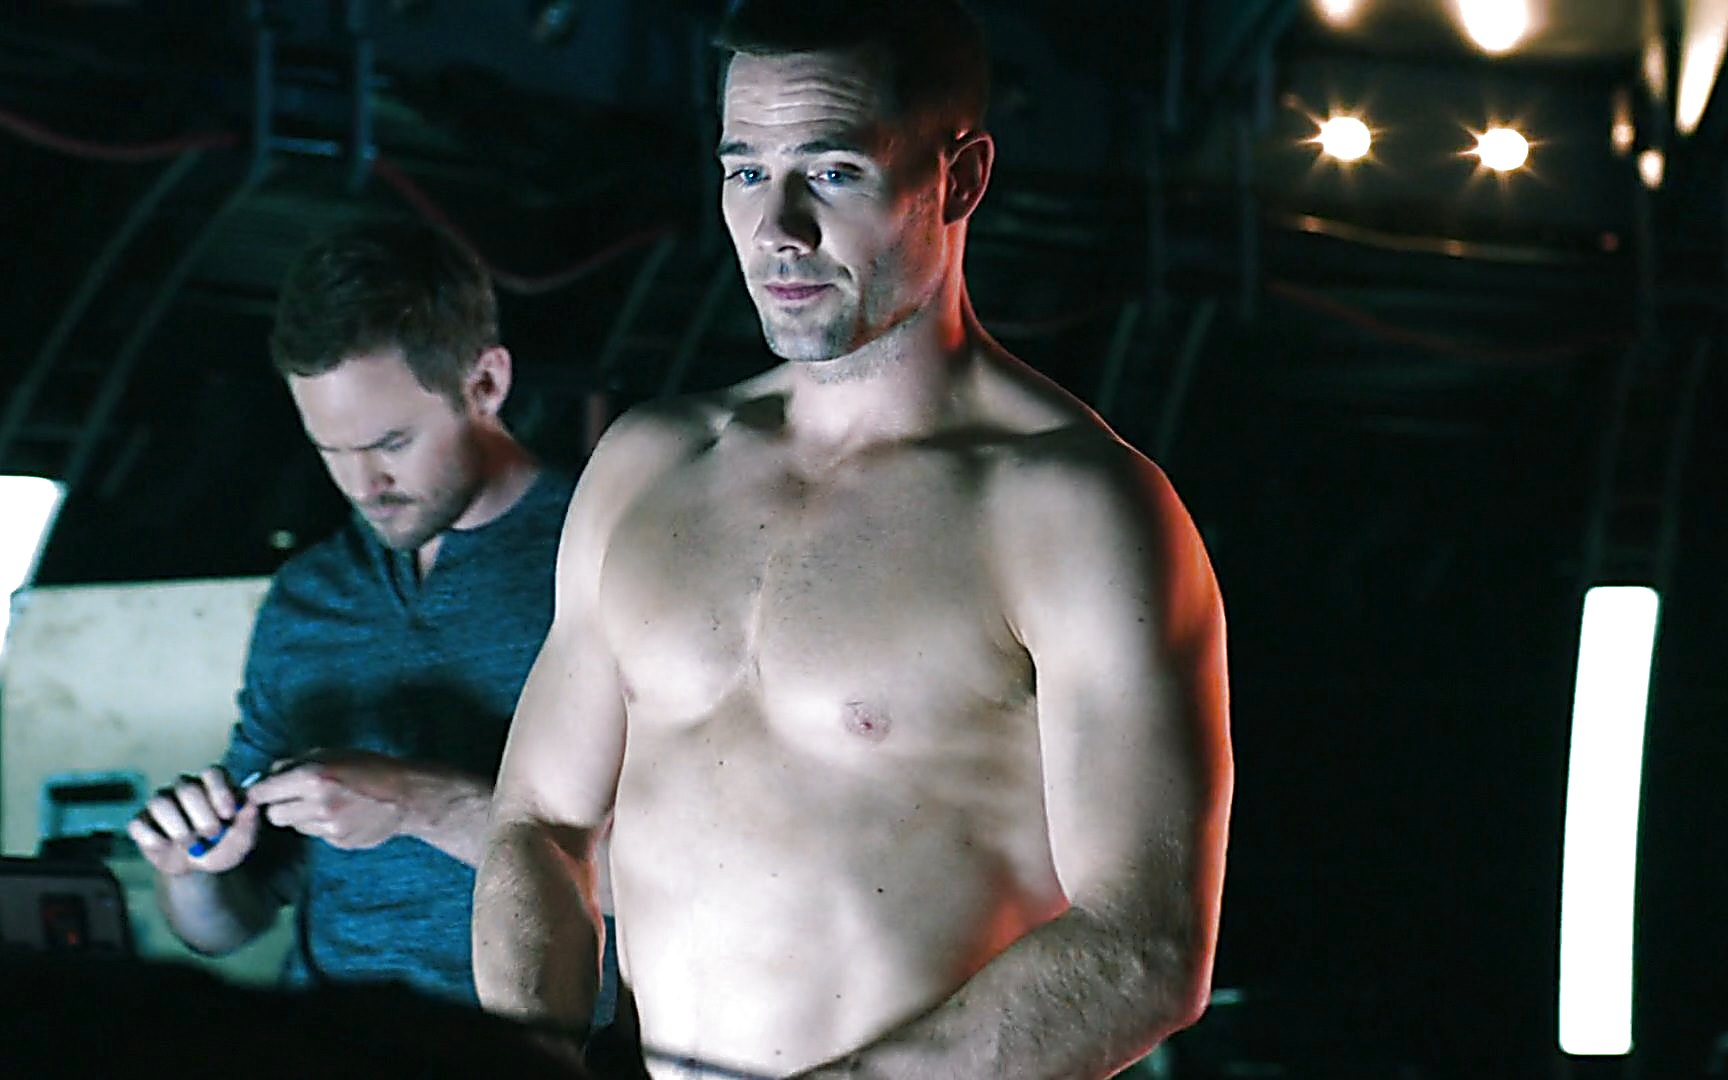 Luke Macfarlane sexy shirtless scene July 18, 2015, 11am